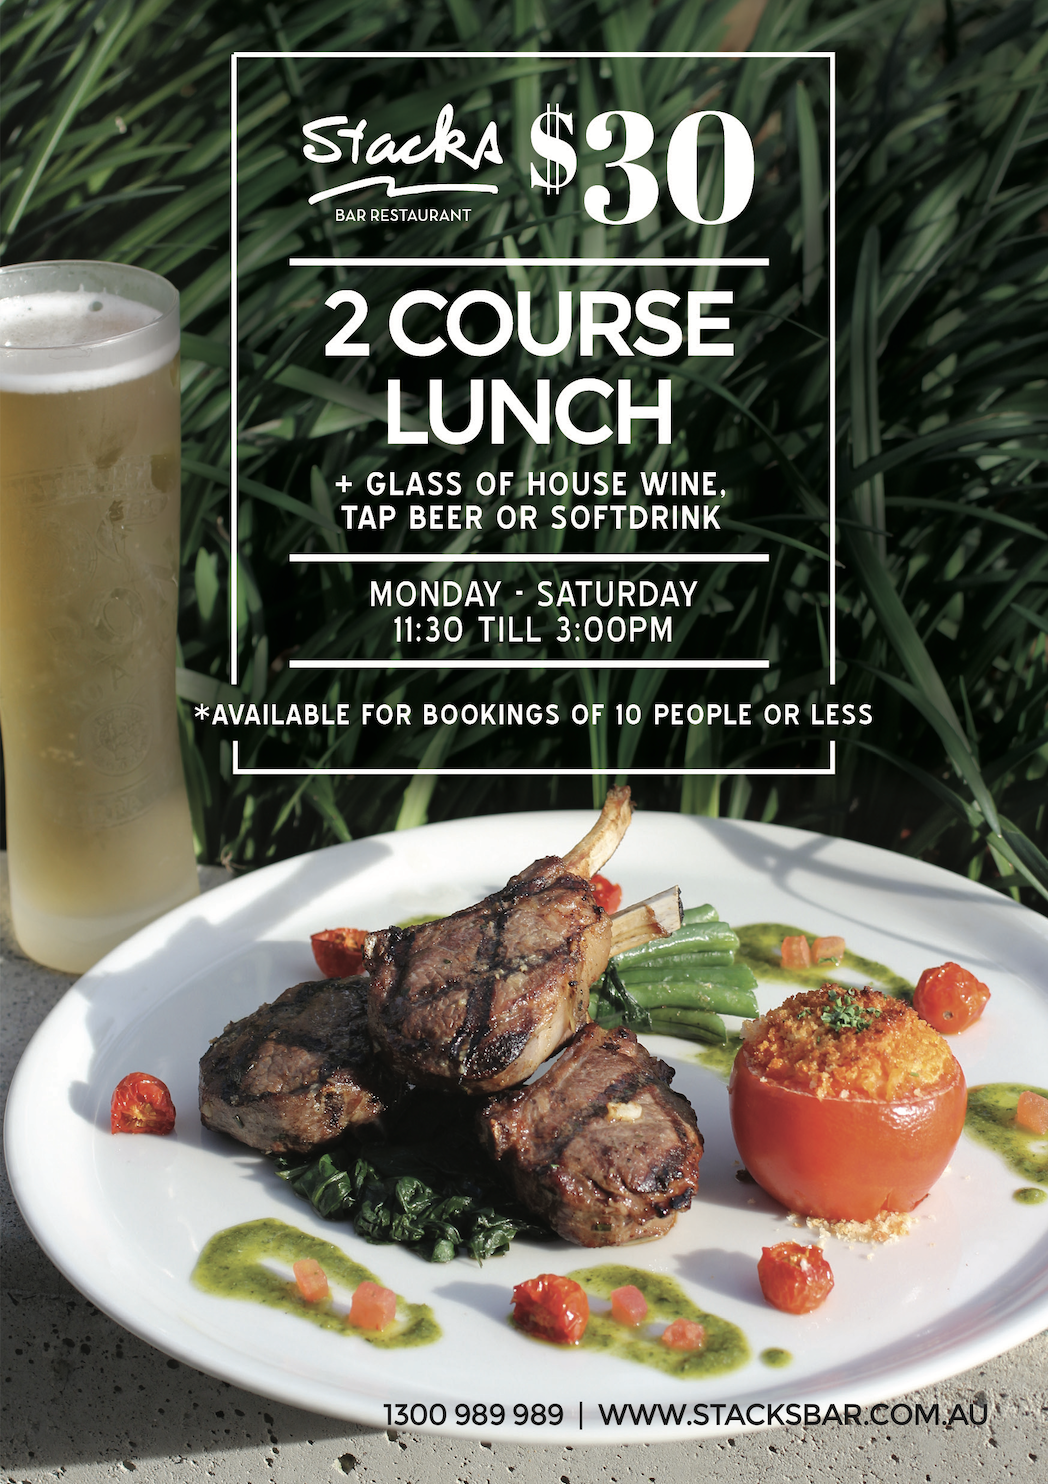 Stacks Bar Restaurant 2 Course Lunch Special